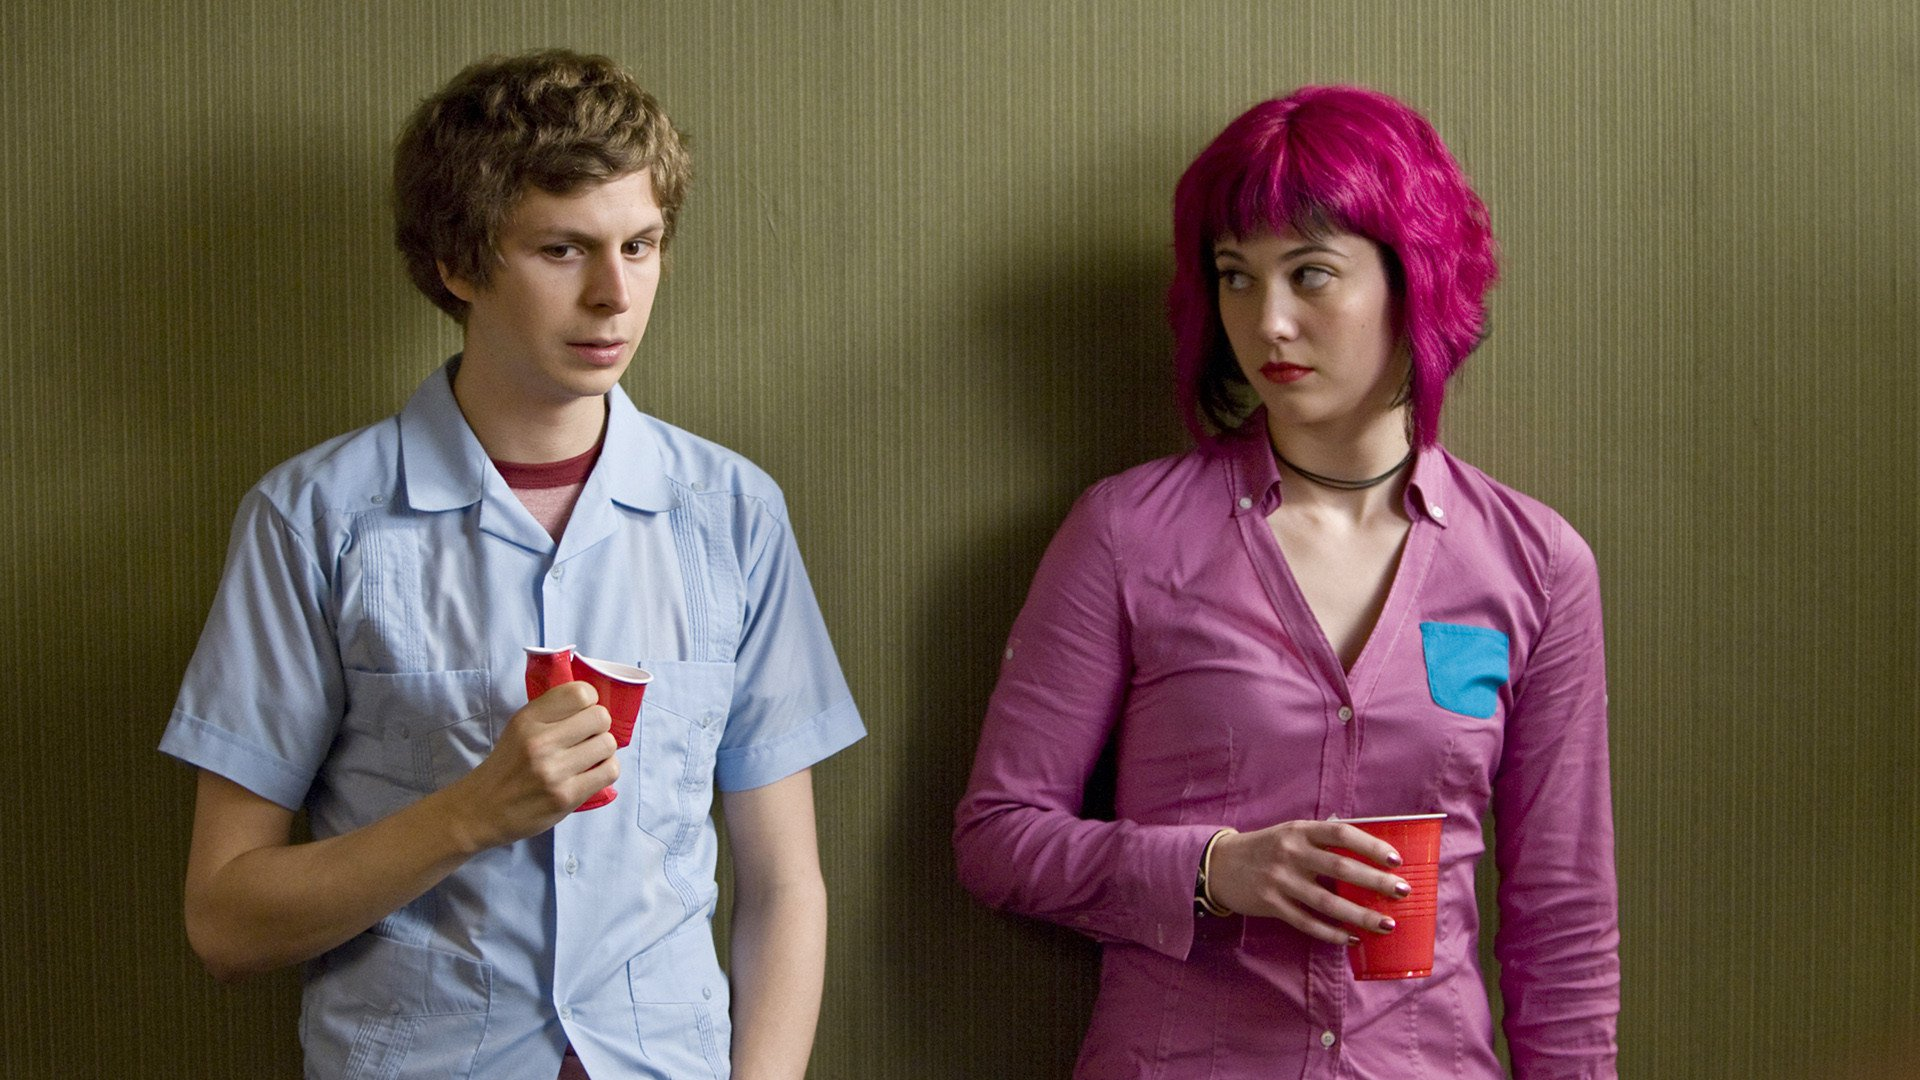 Stream of the Day: As 'Scott Pilgrim' Turns 10, the Time Is Ripe to Reconsider Edgar Wright